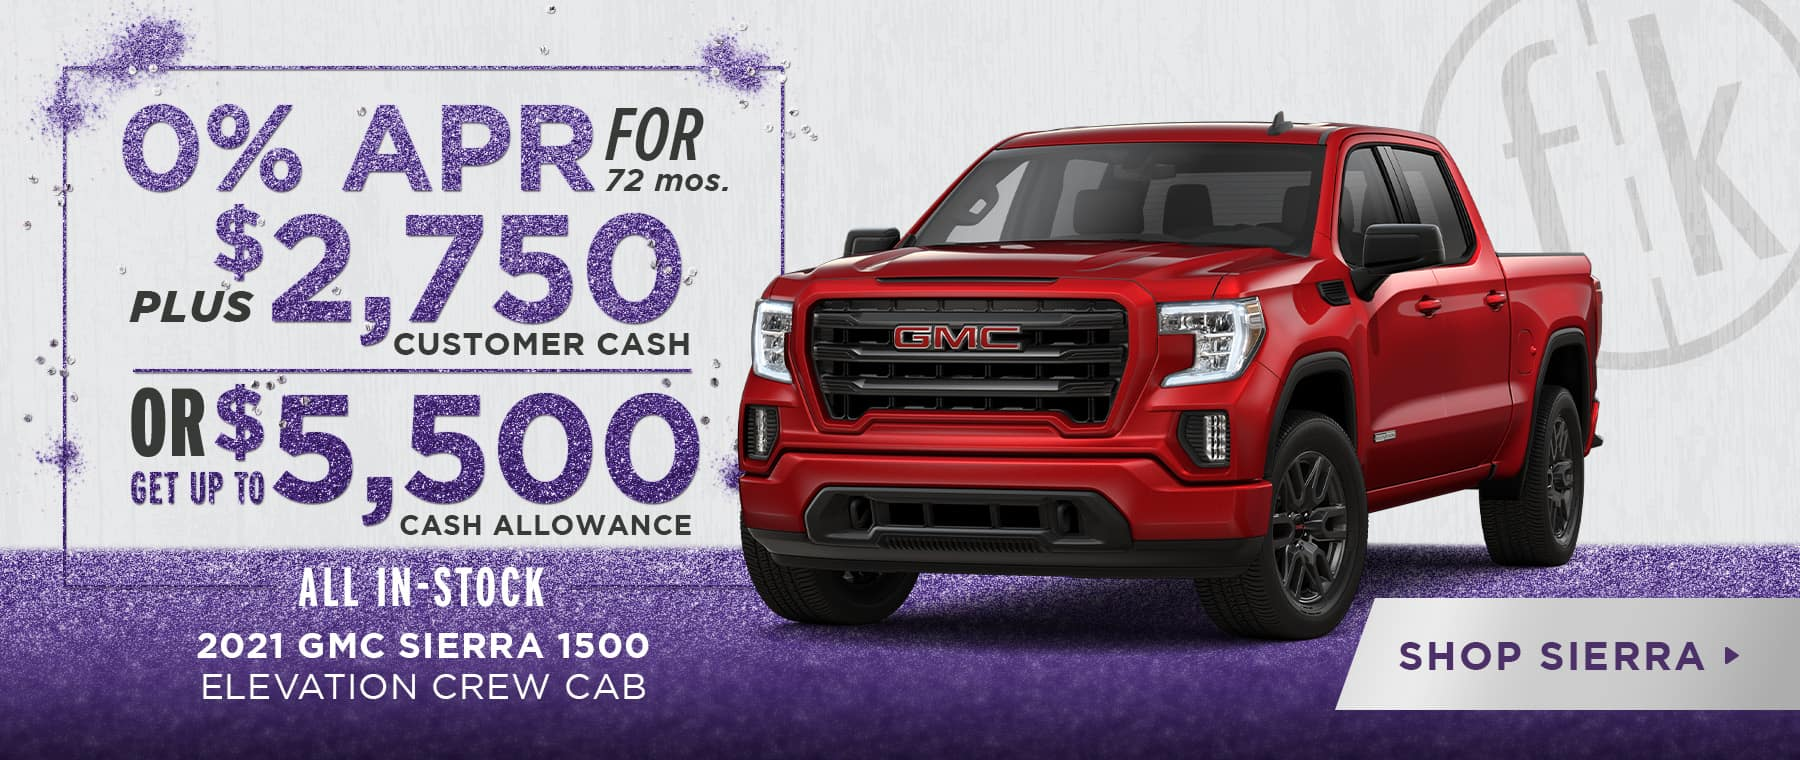 0% for 72 mos. PLUS $2,750 Customer Cash OR Get Up To $5,500 Cash Allowance 2021 Sierra Elevation